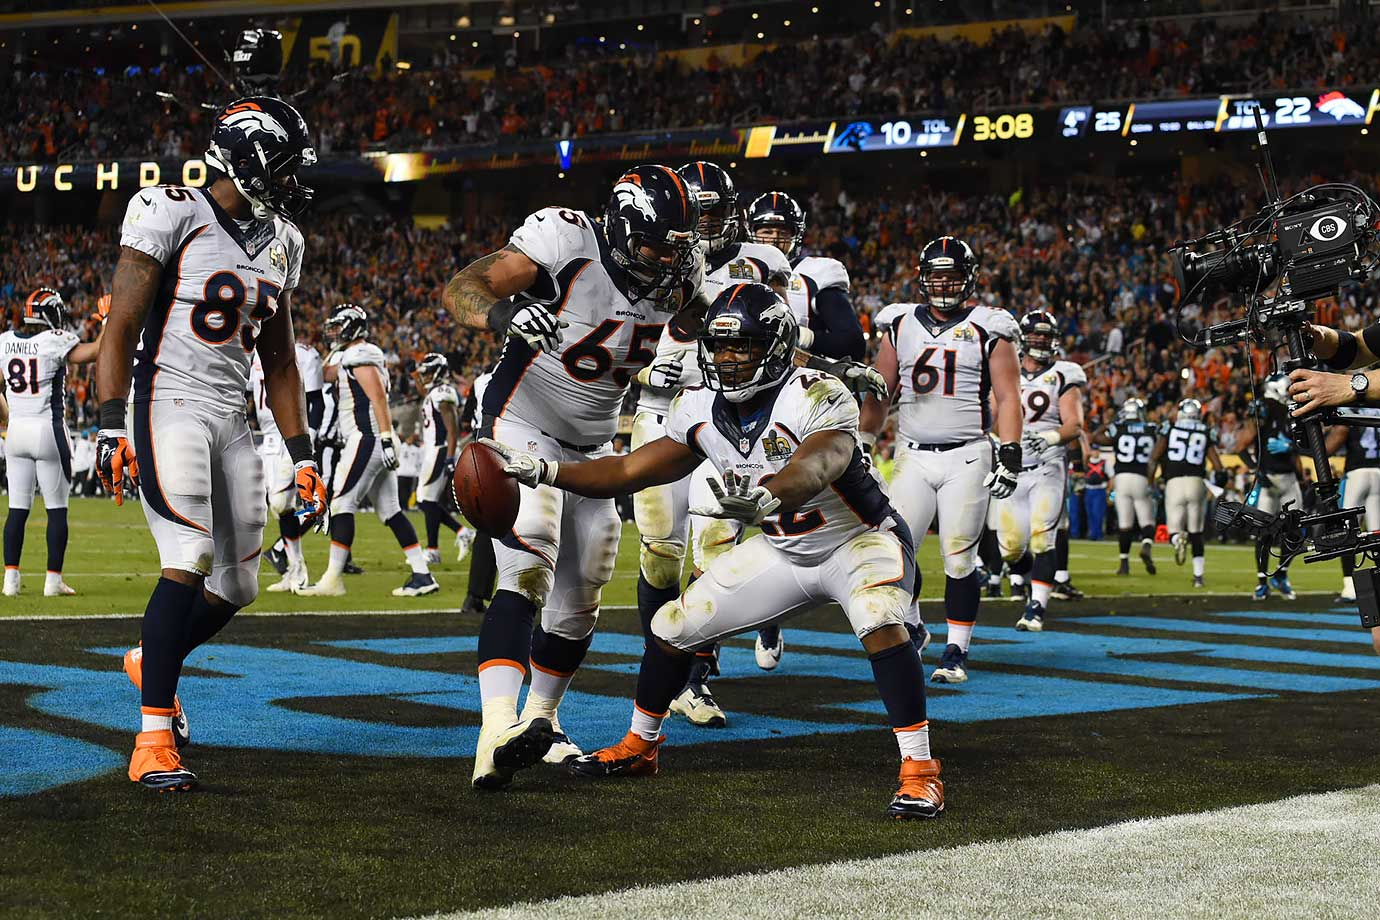 C.J. Anderson celebrates his late touchdown.